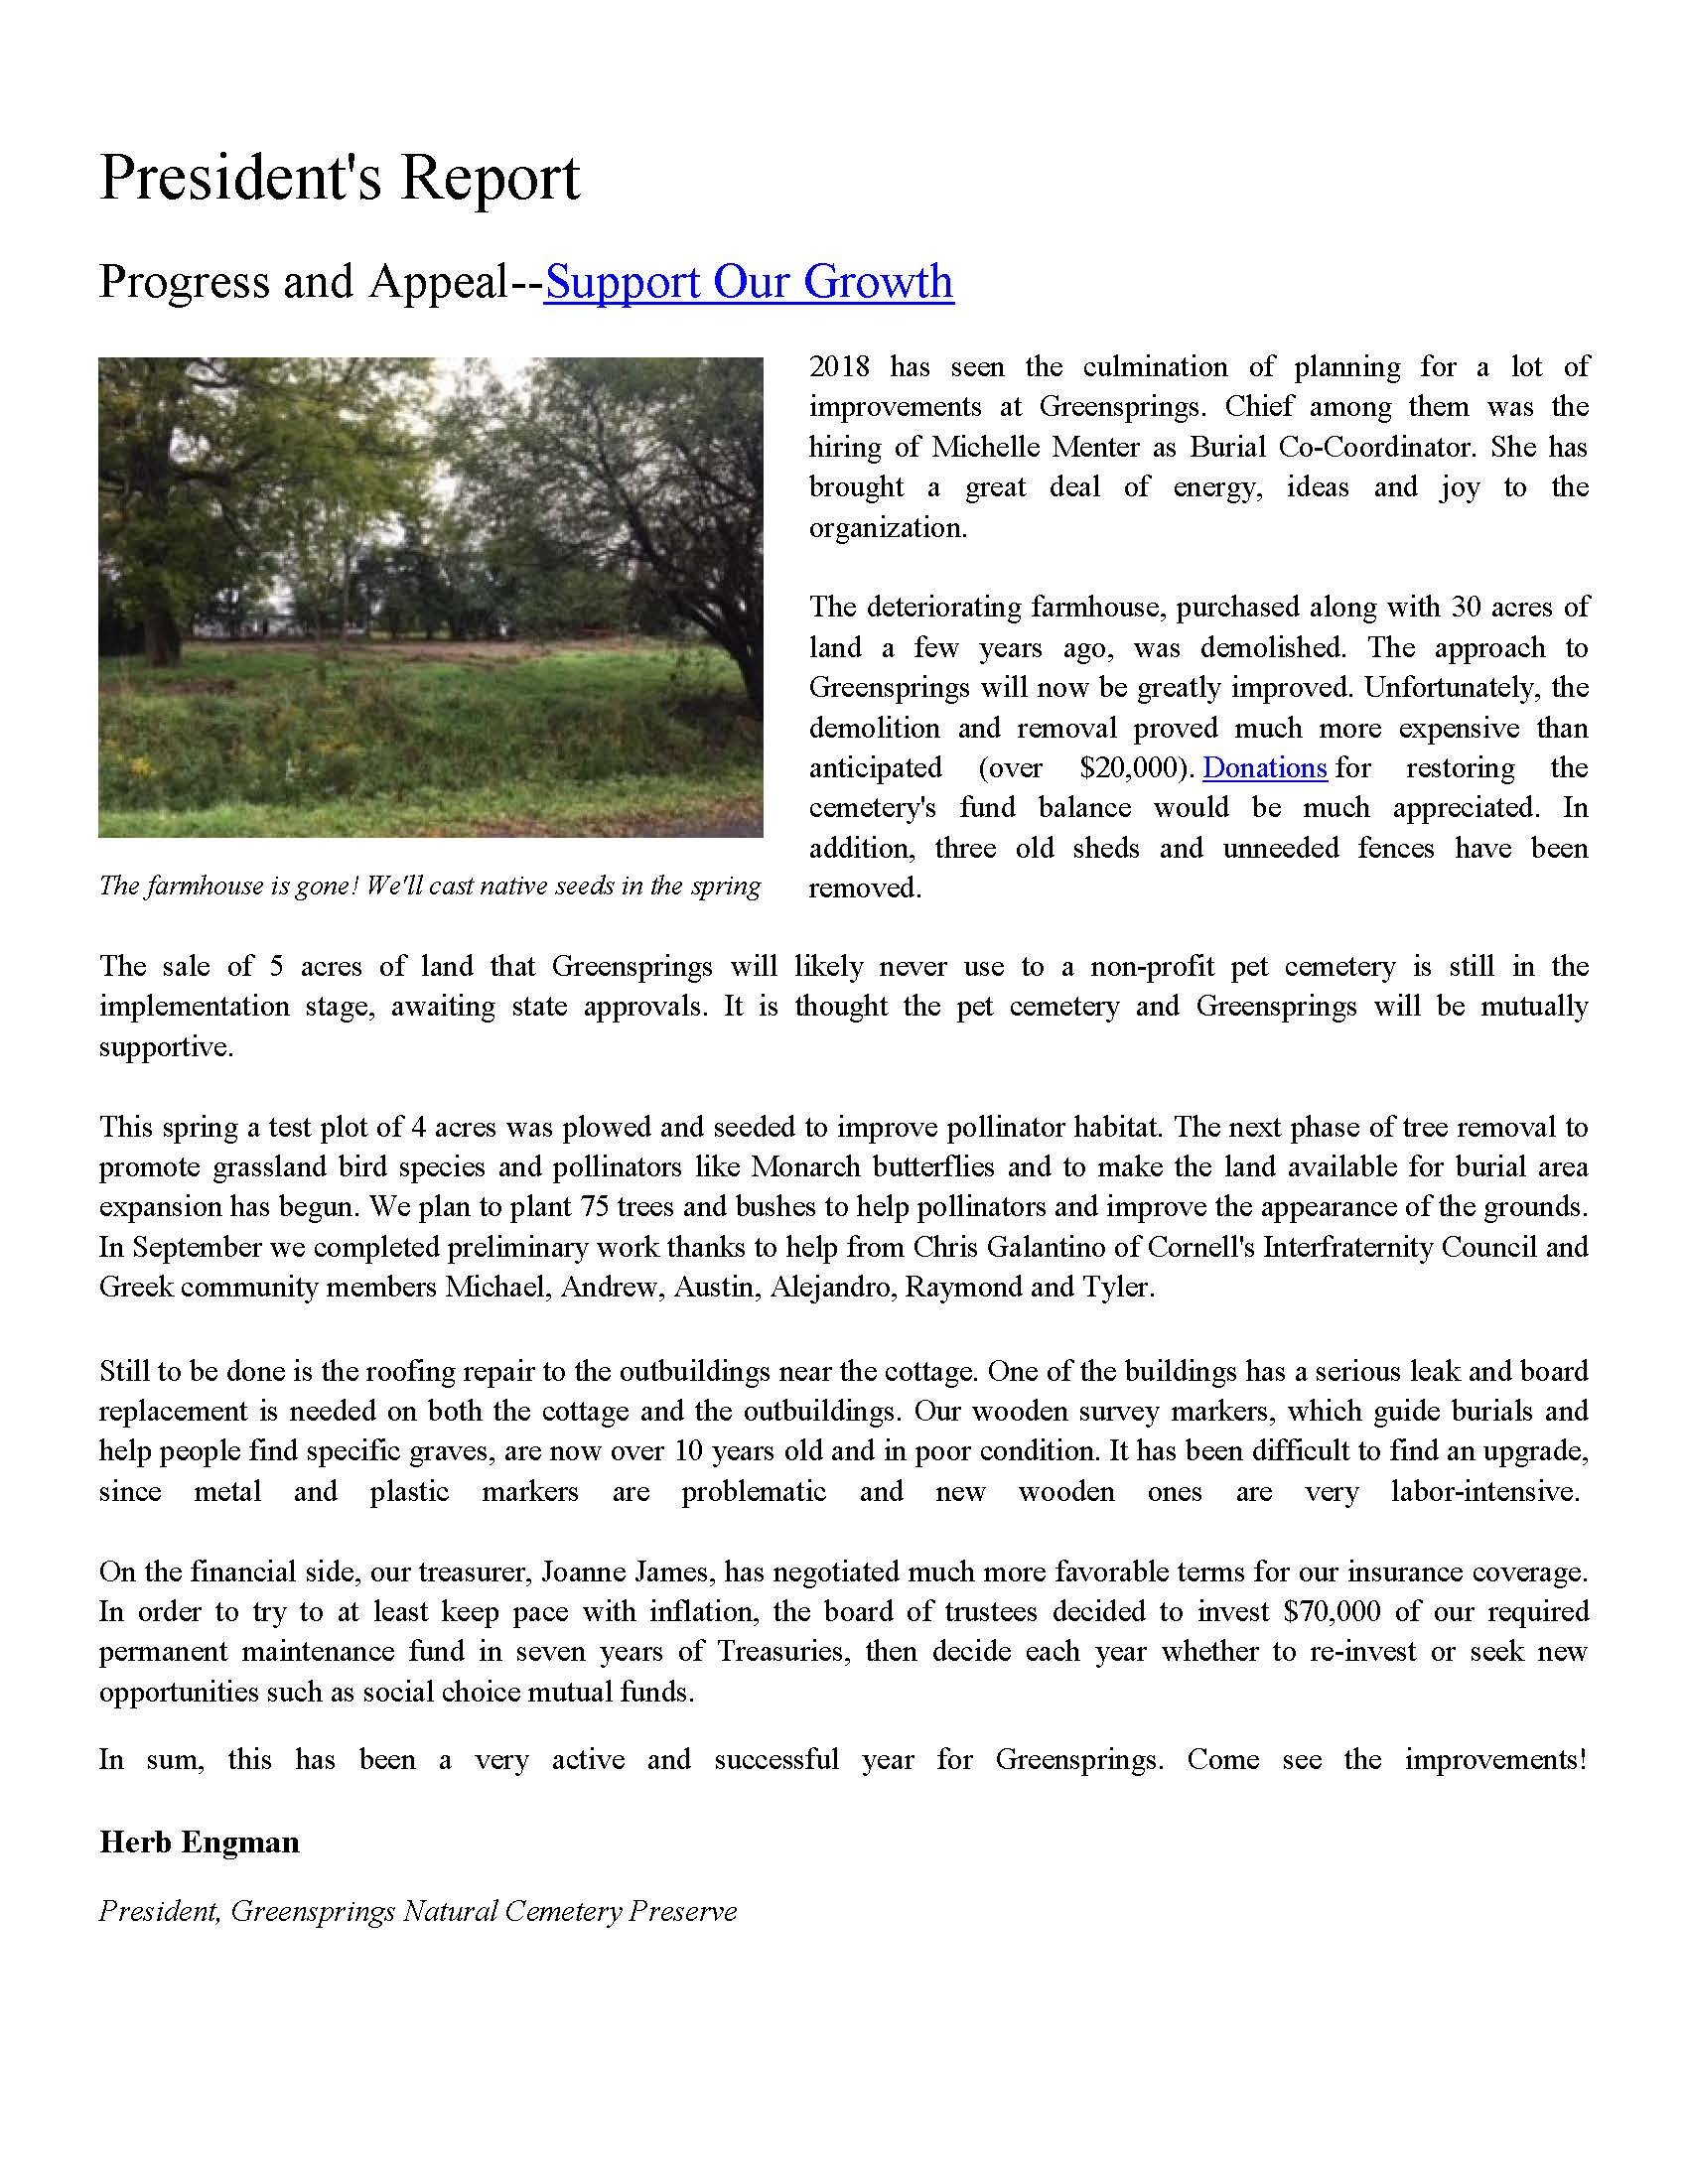 Greensprings Fall Newsletter 2018_Page_3.jpg